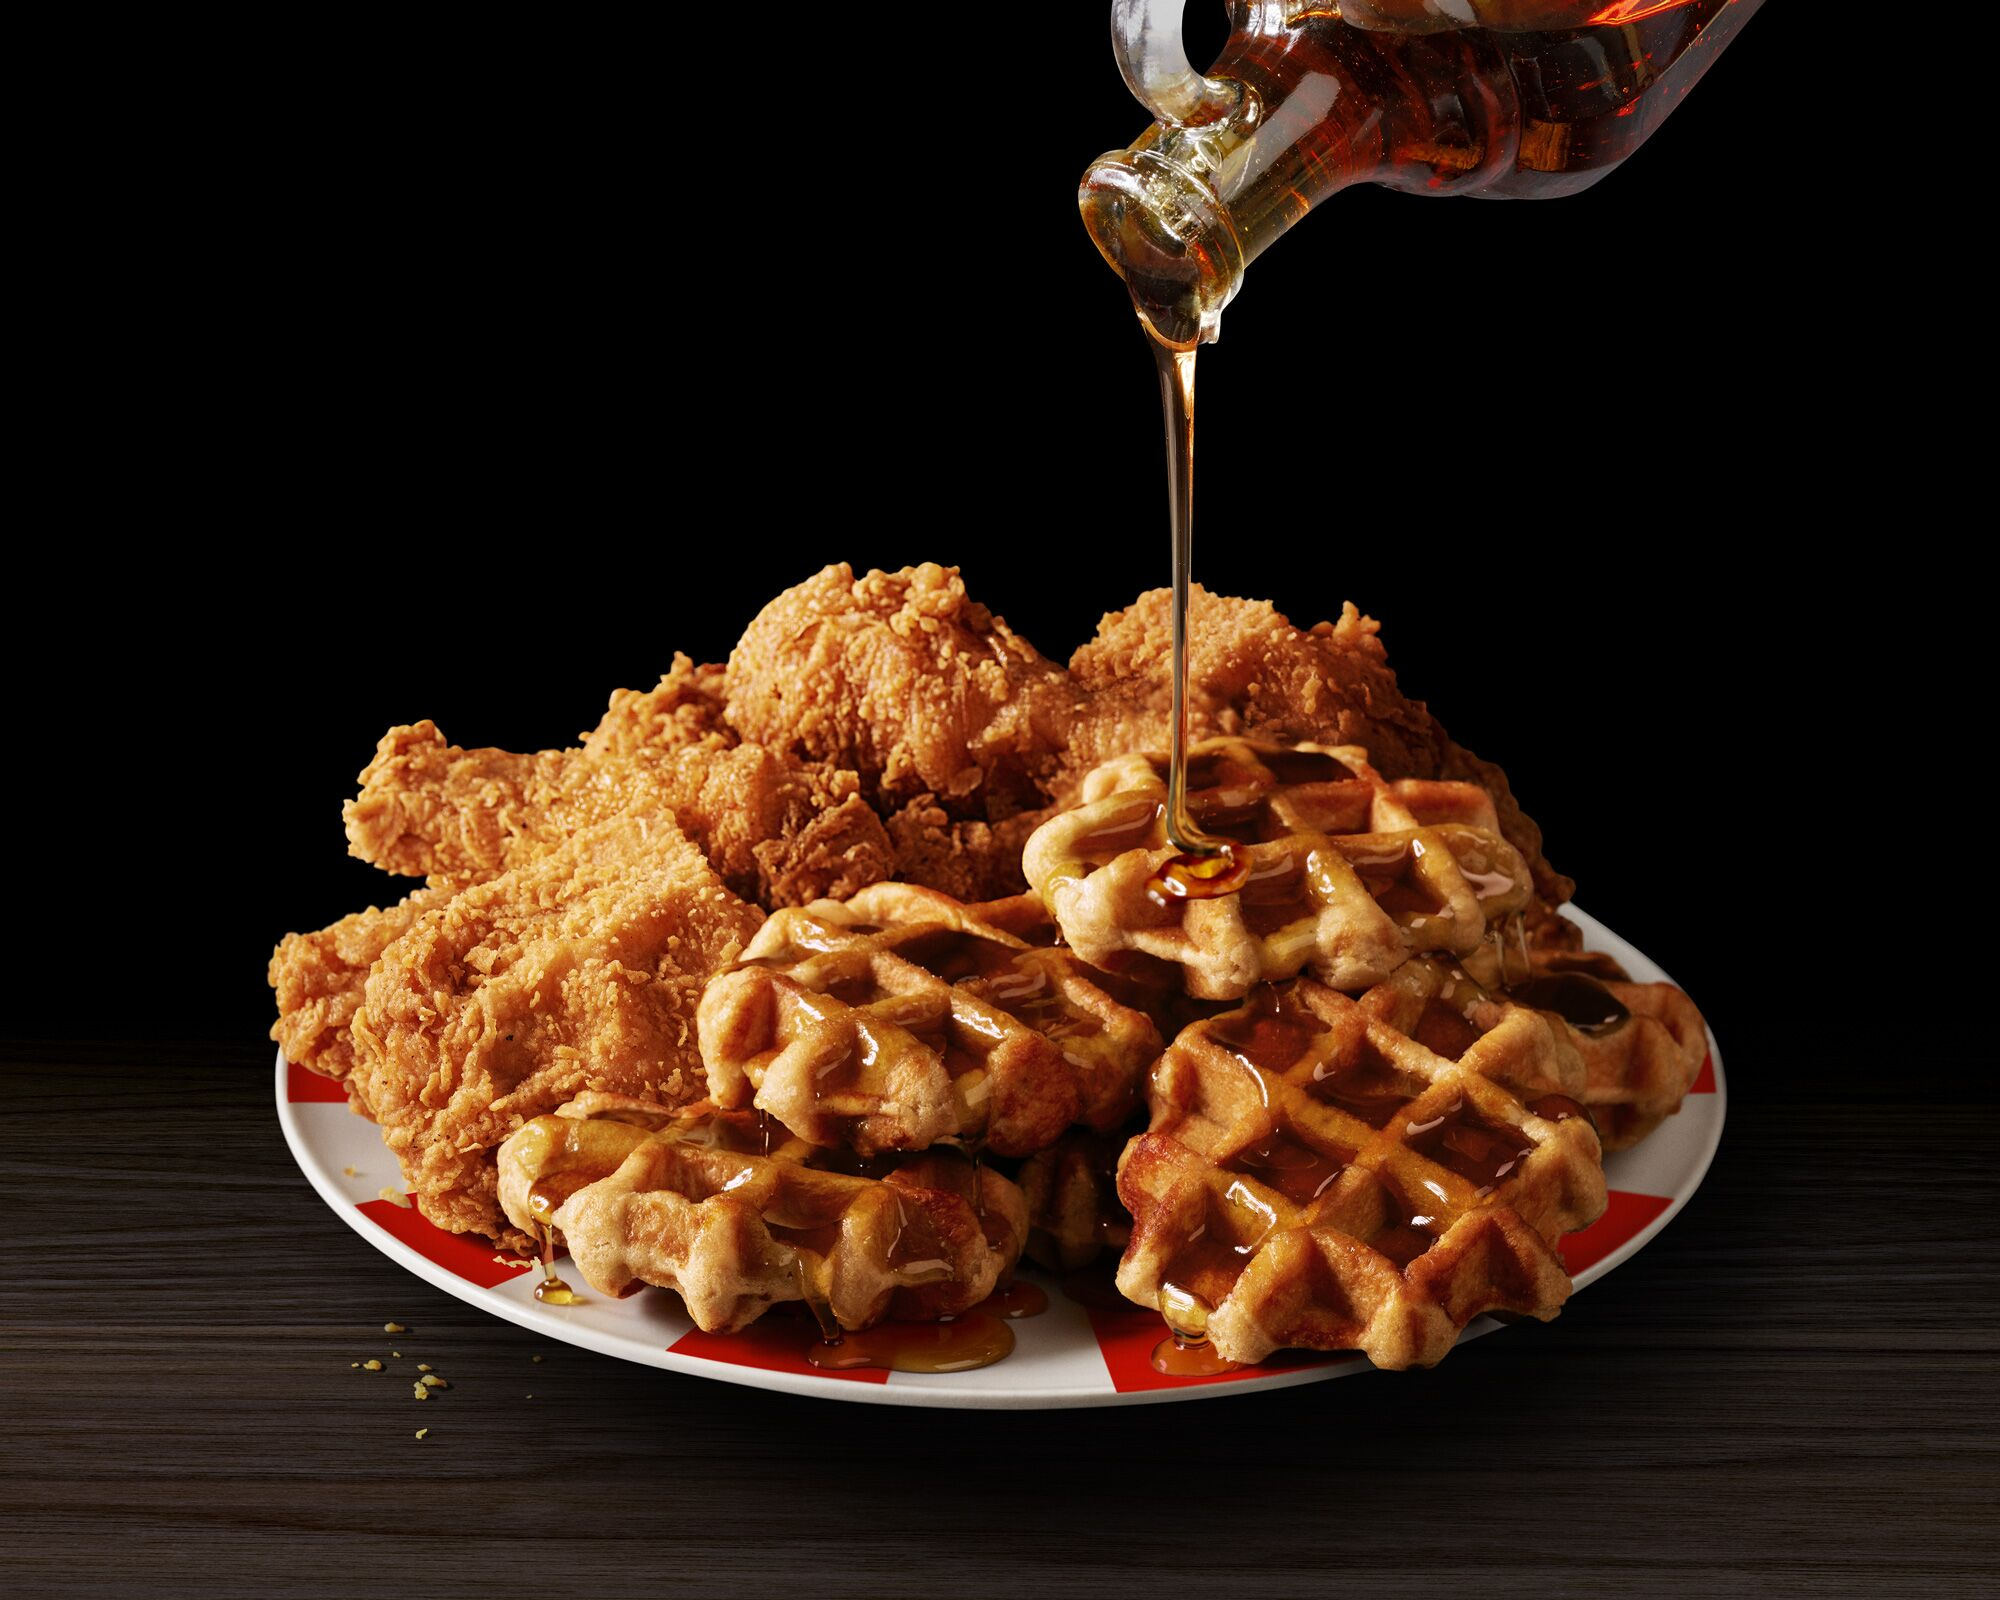 Kentucky Fried Chicken and Waffles are back and weu2019re hungry